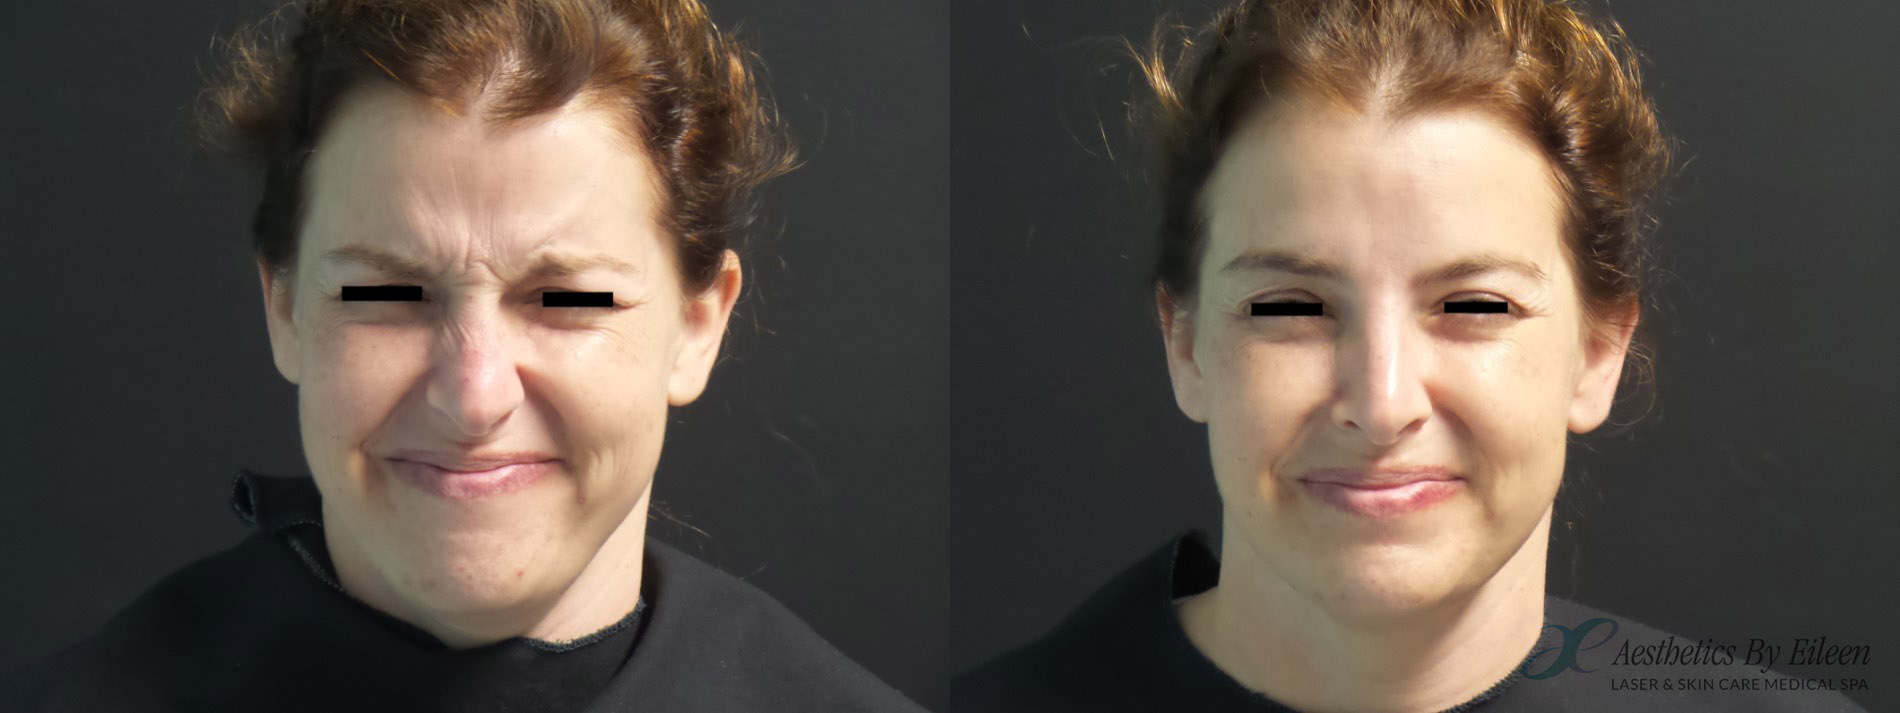 Dysport before and after results